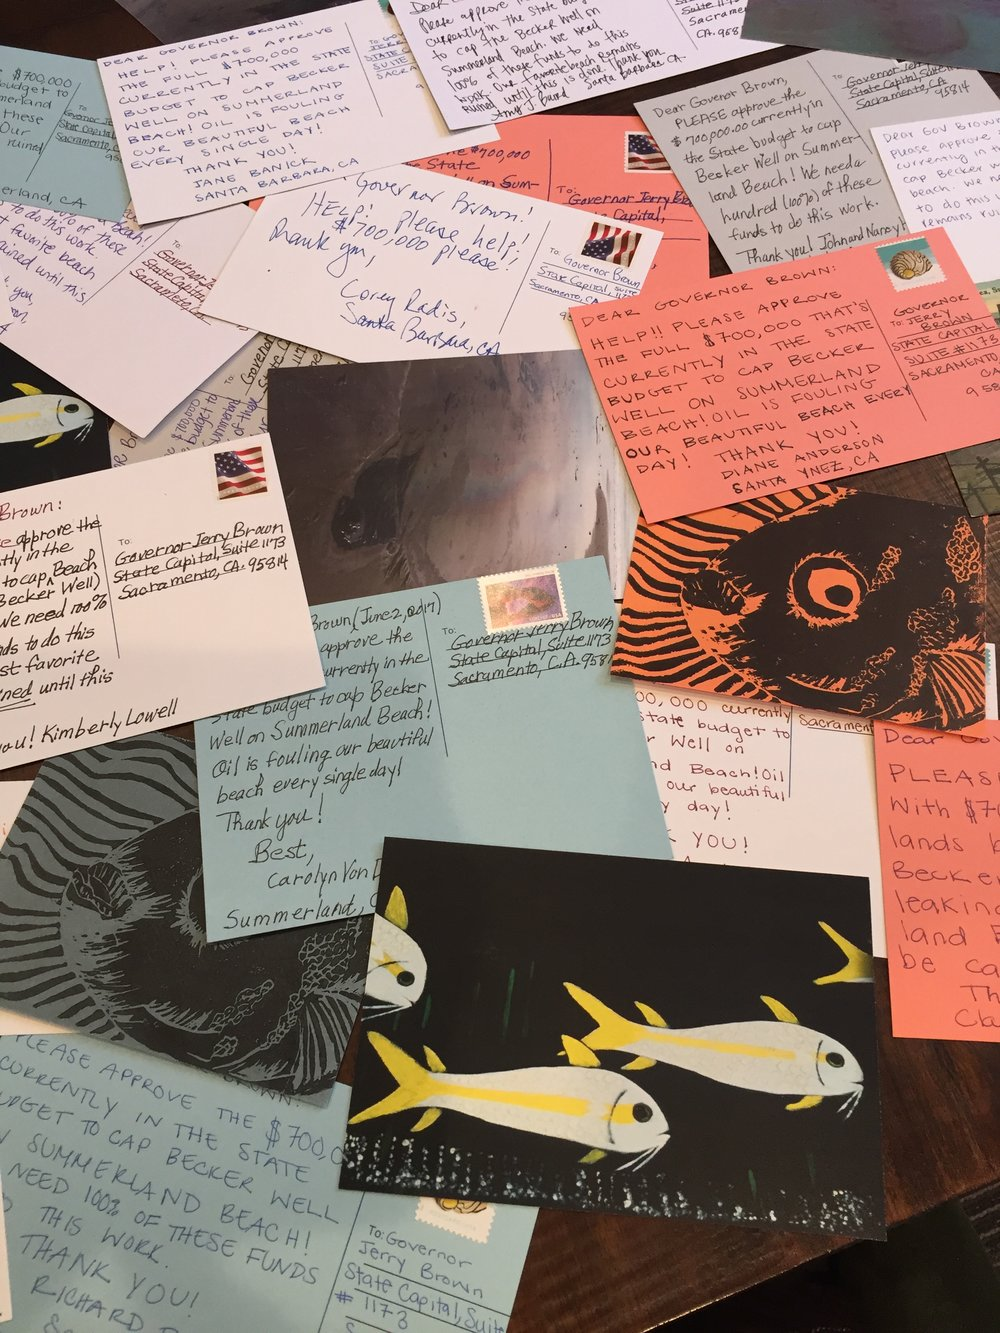 BECKER WELL POSTCARDS SENT TO GOVERNOR BROWN via Heal the Ocean 6-5-2017.jpg